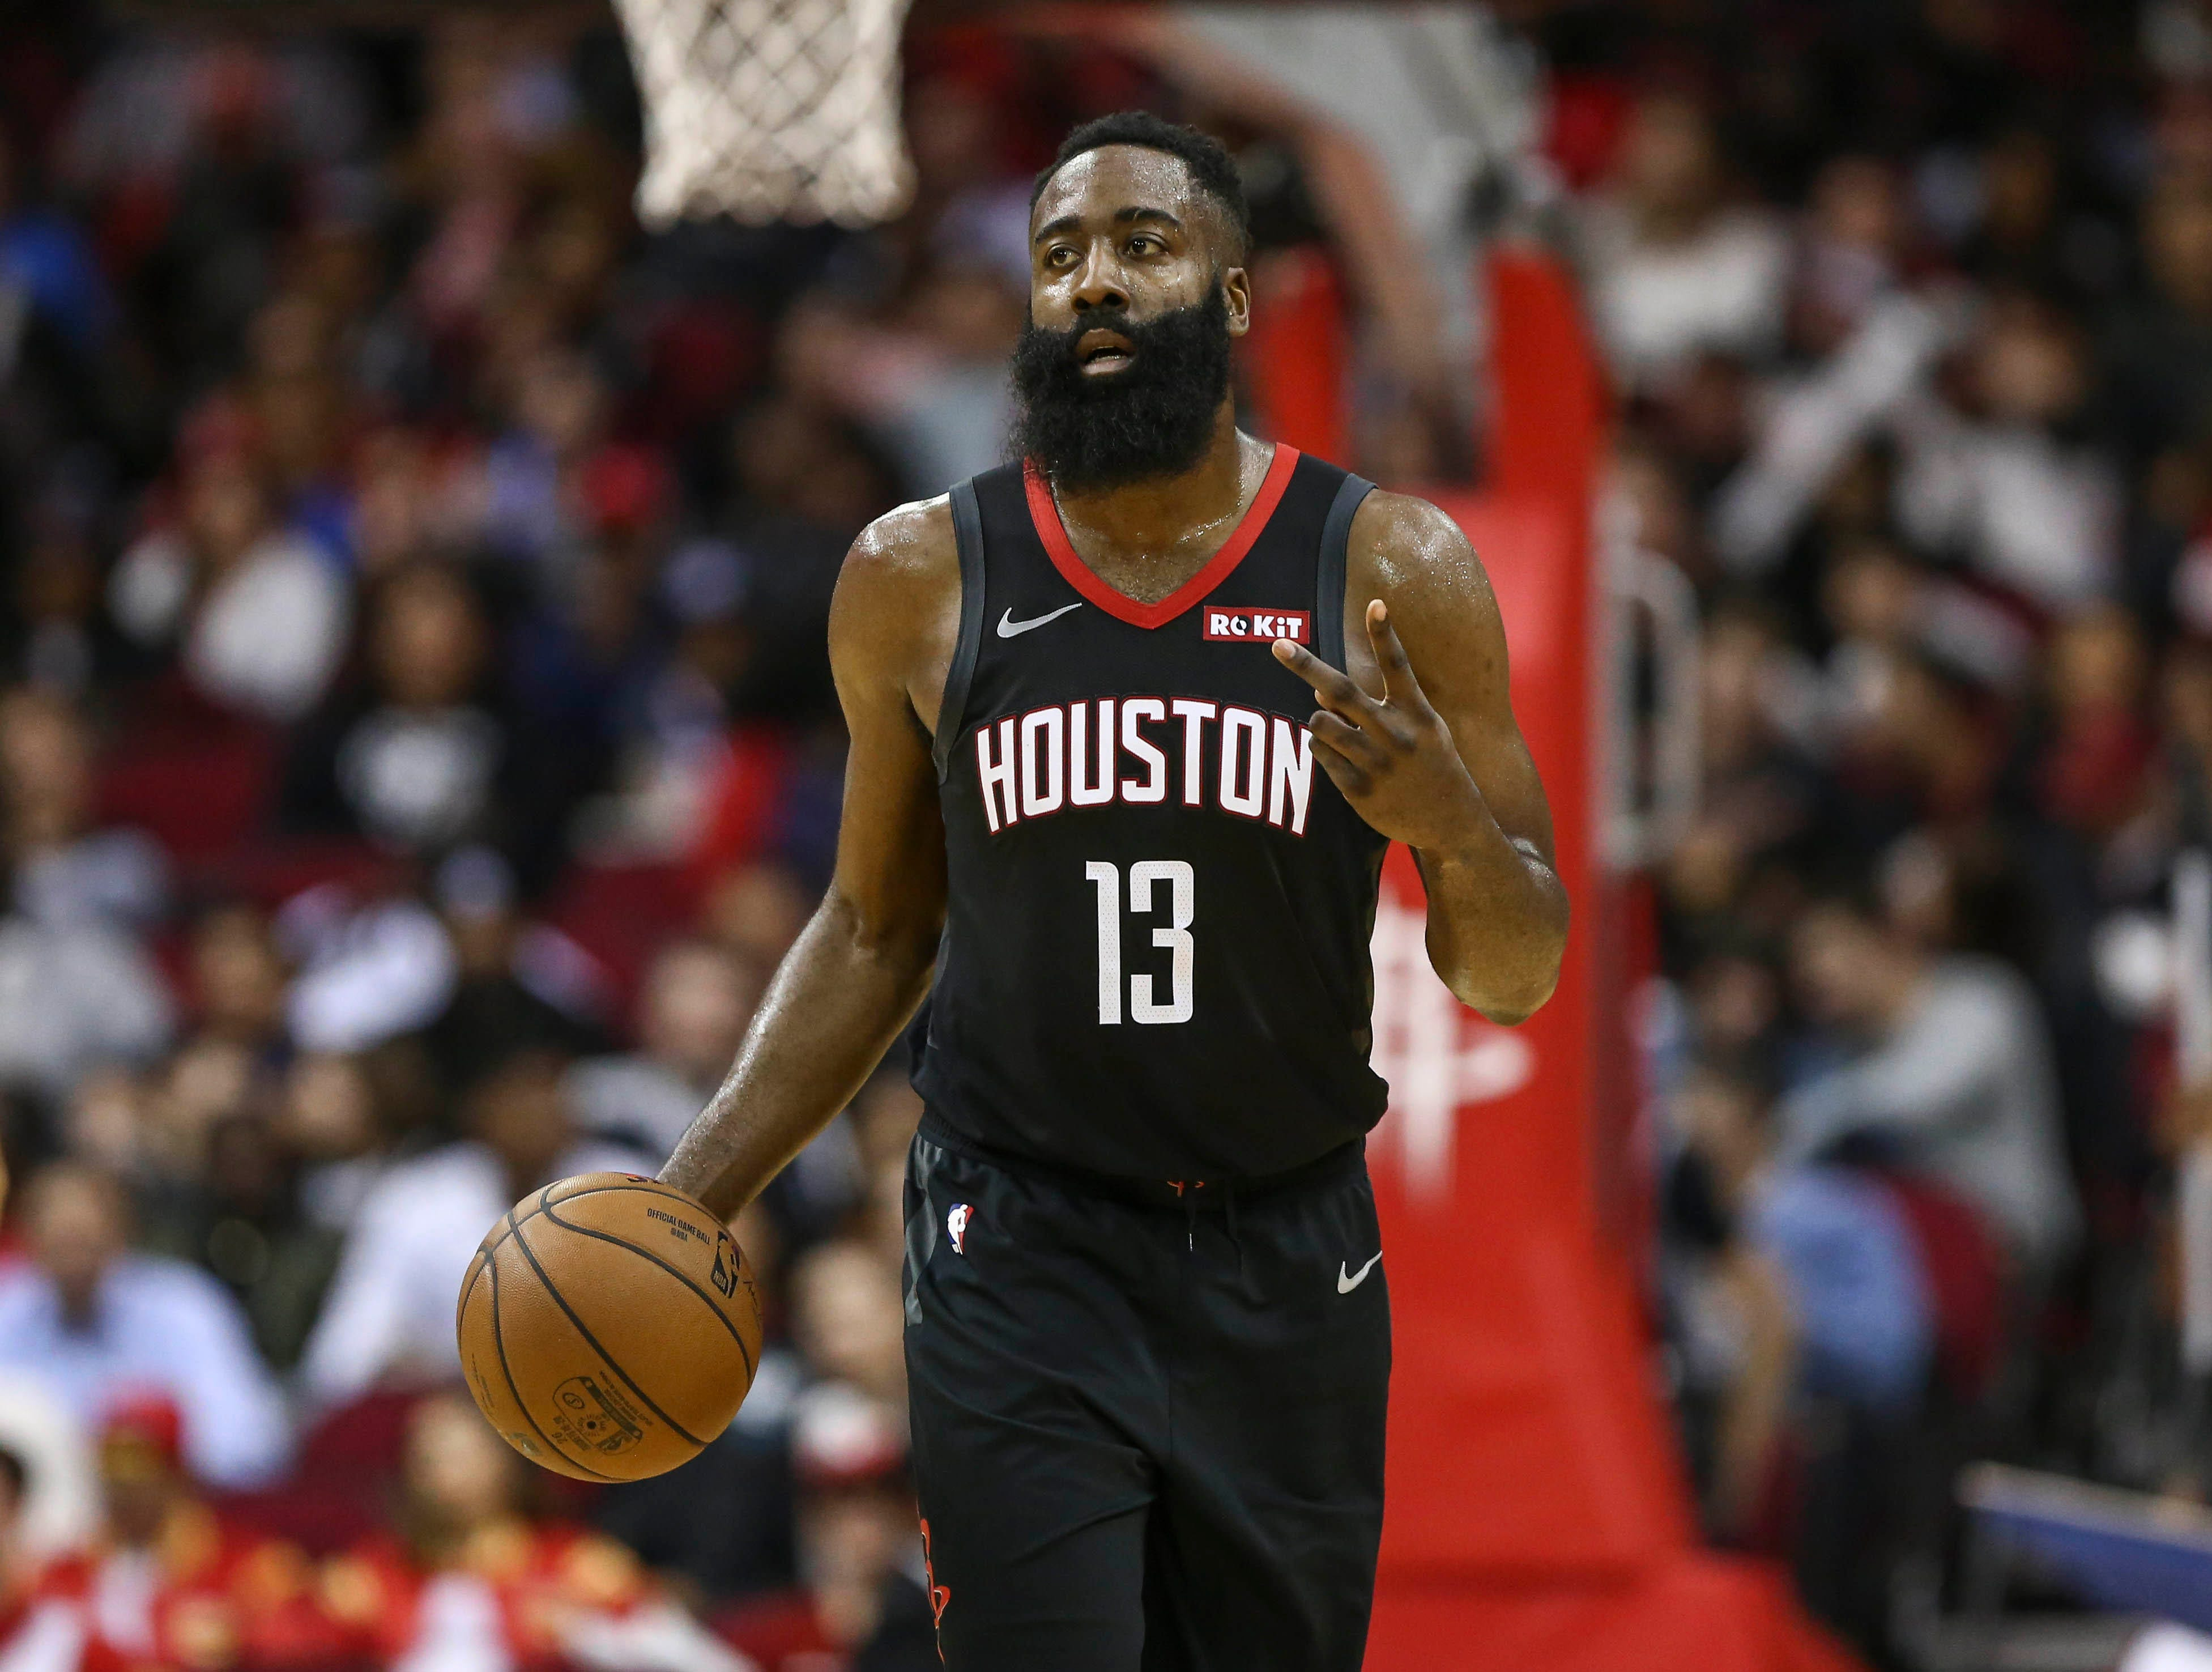 Rockets' James Harden: Five things you